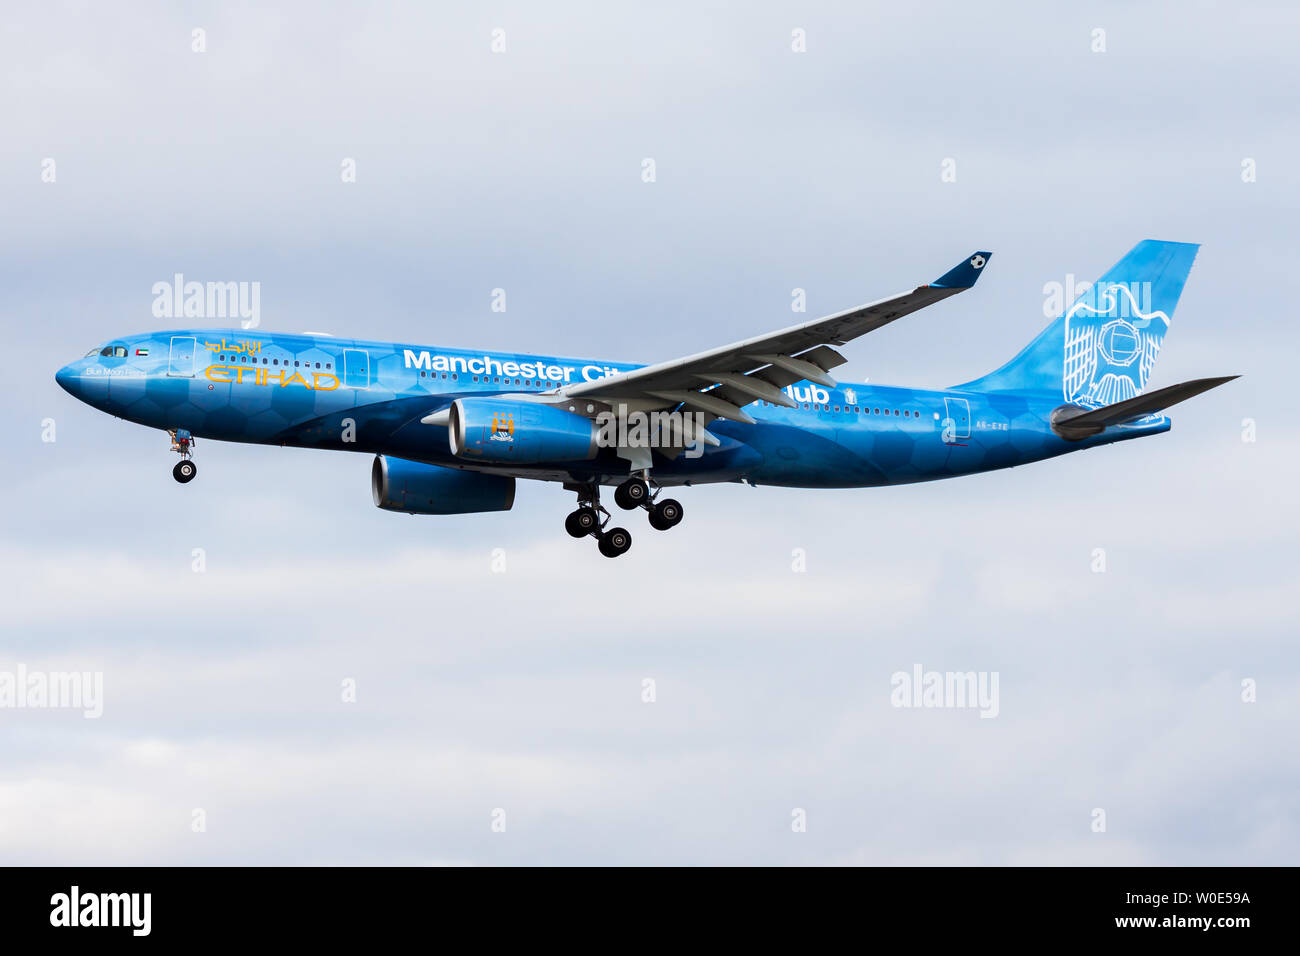 A332 Stock Photos & A332 Stock Images - Alamy